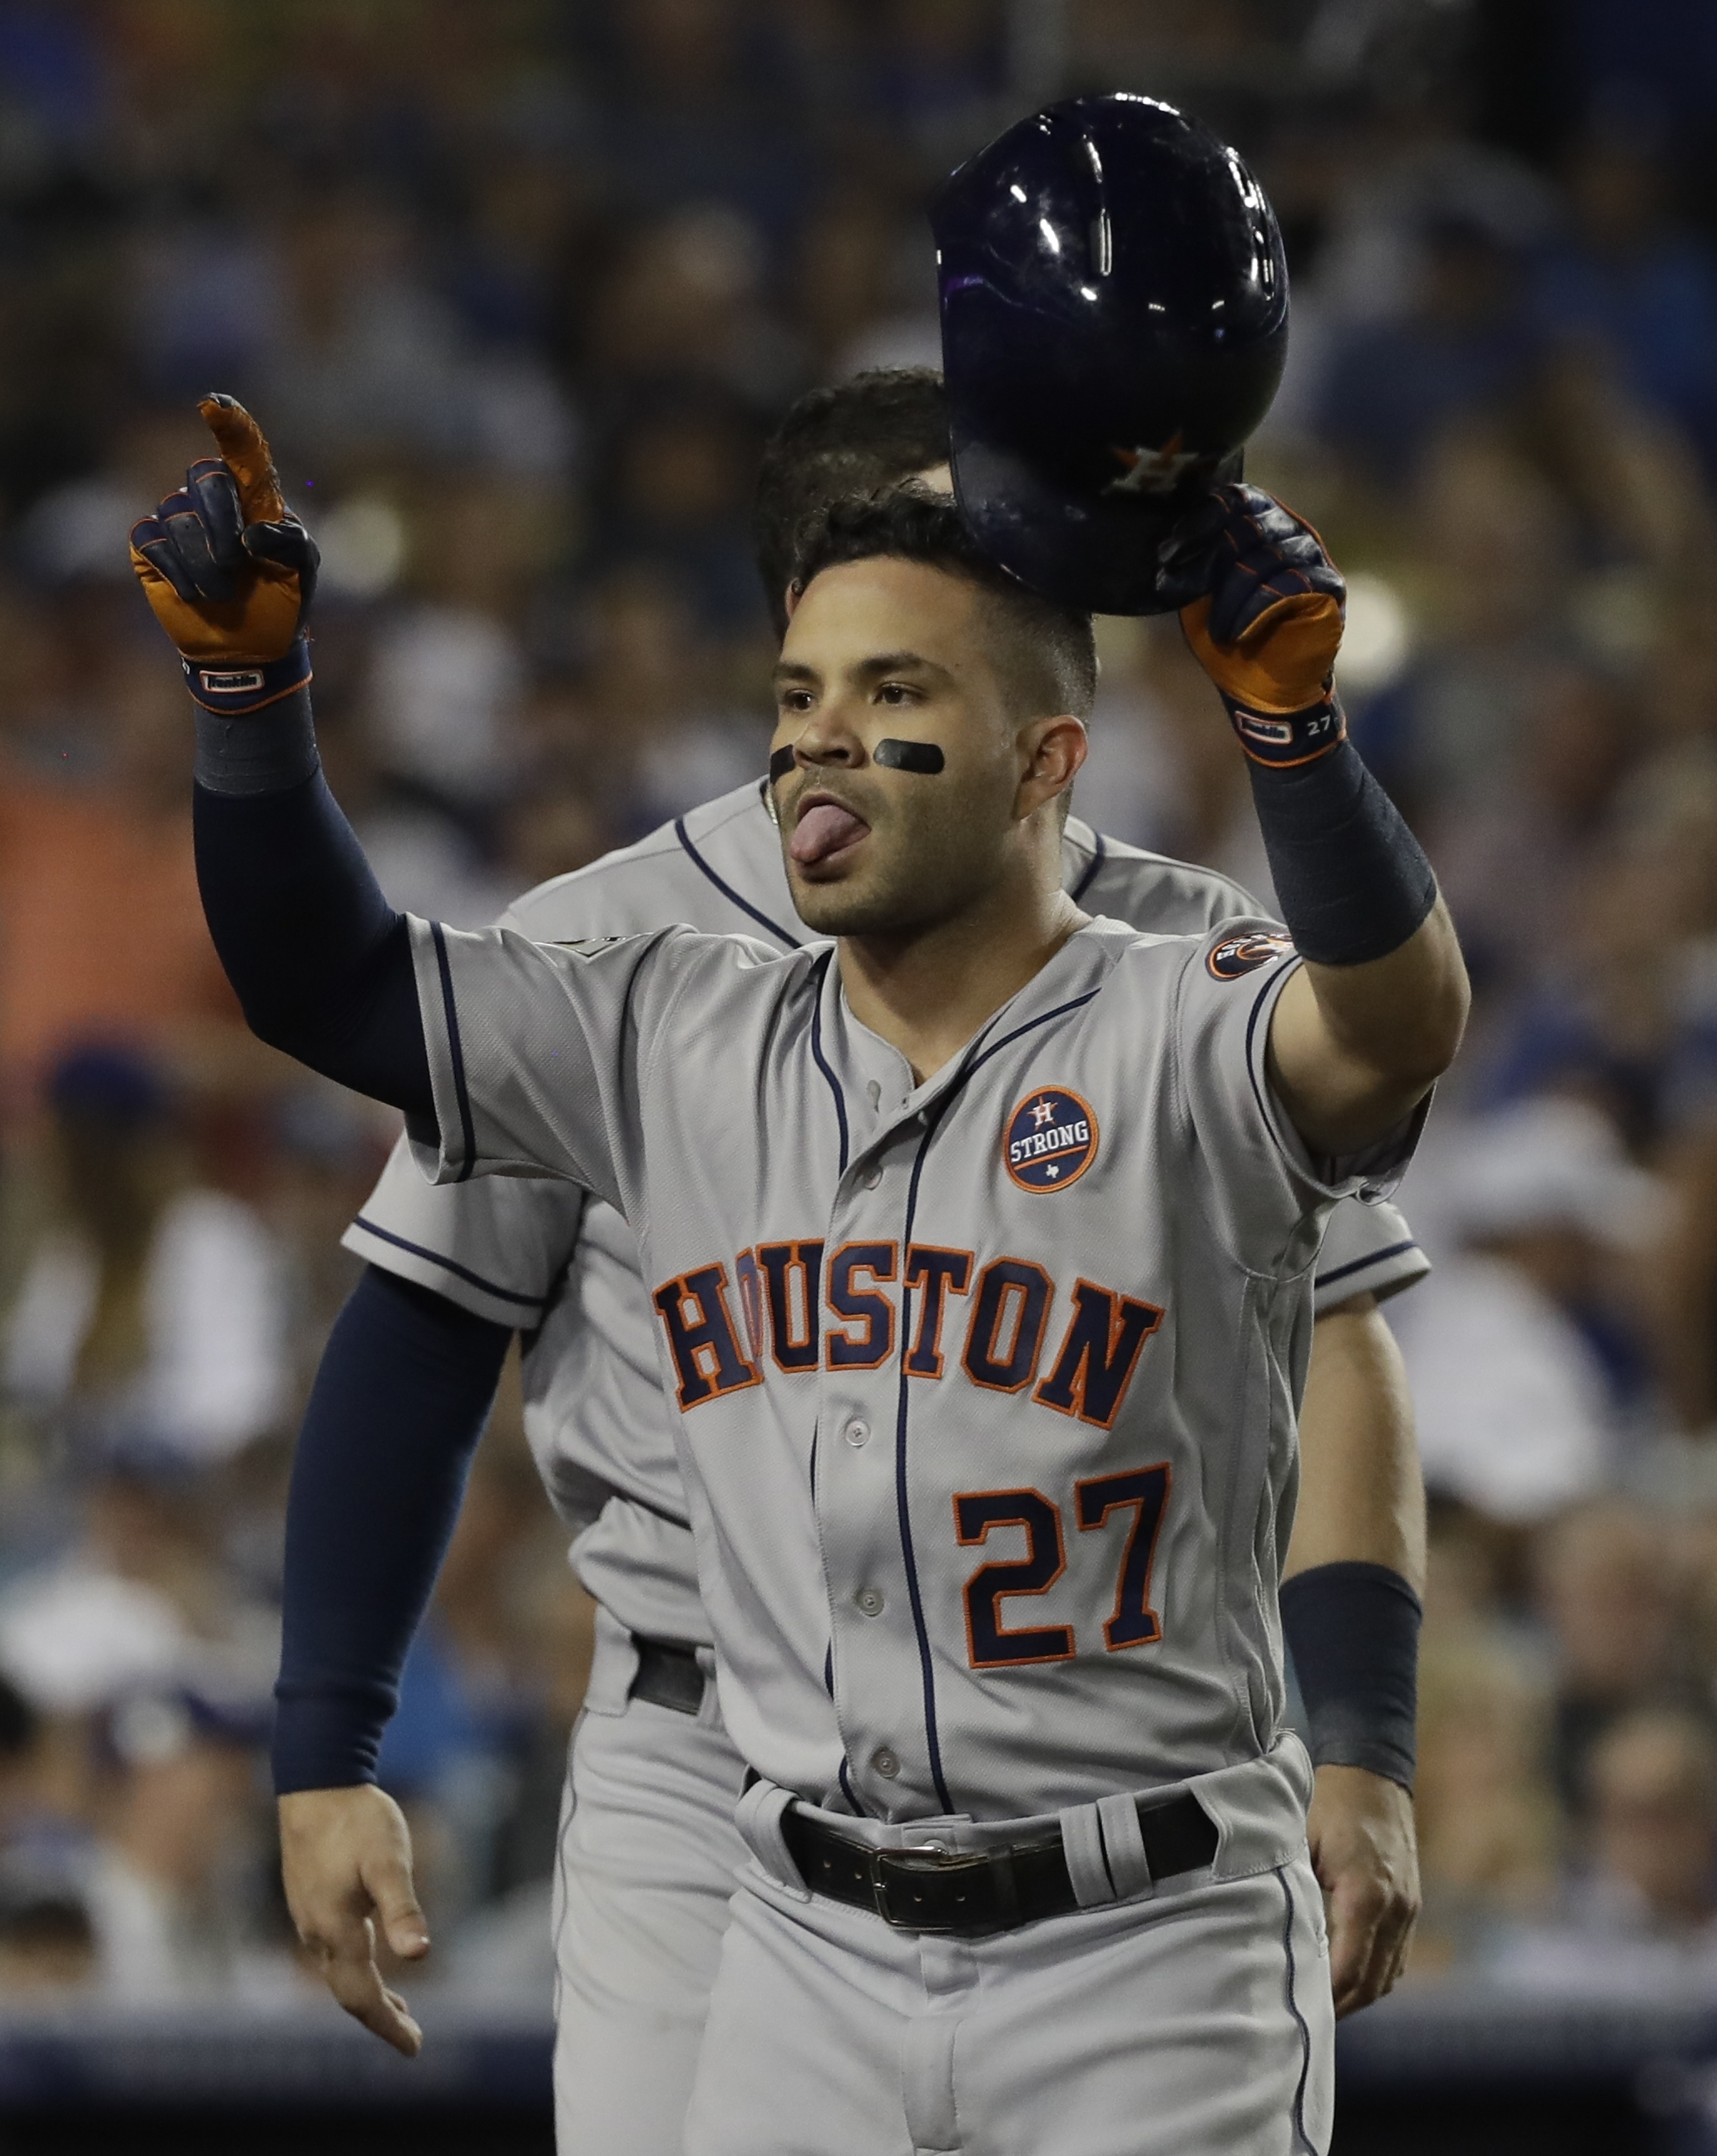 Houston Astros' Jose Altuve reacts after hitting a home run during the 10th inning of Game 2 of baseball's World Series against the Los Angeles Dodgers Wednesday, Oct. 25, 2017, in Los Angeles. (AP Photo/David J. Phillip)